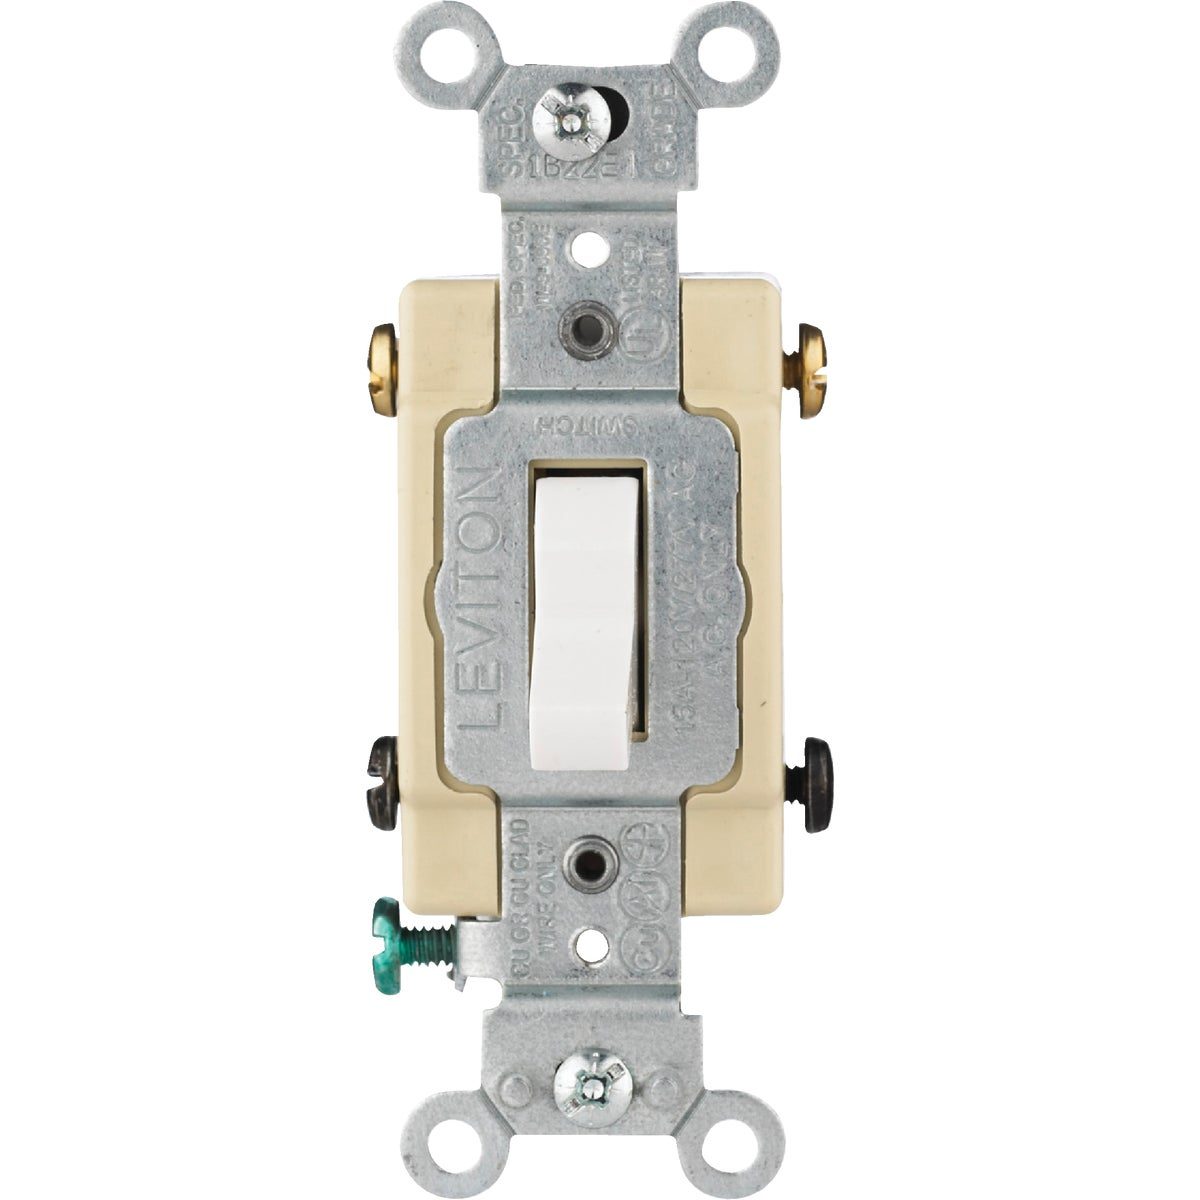 WHT 4-WAY GRND SWITCH - S02-CS415-2WS by Leviton Mfg Co